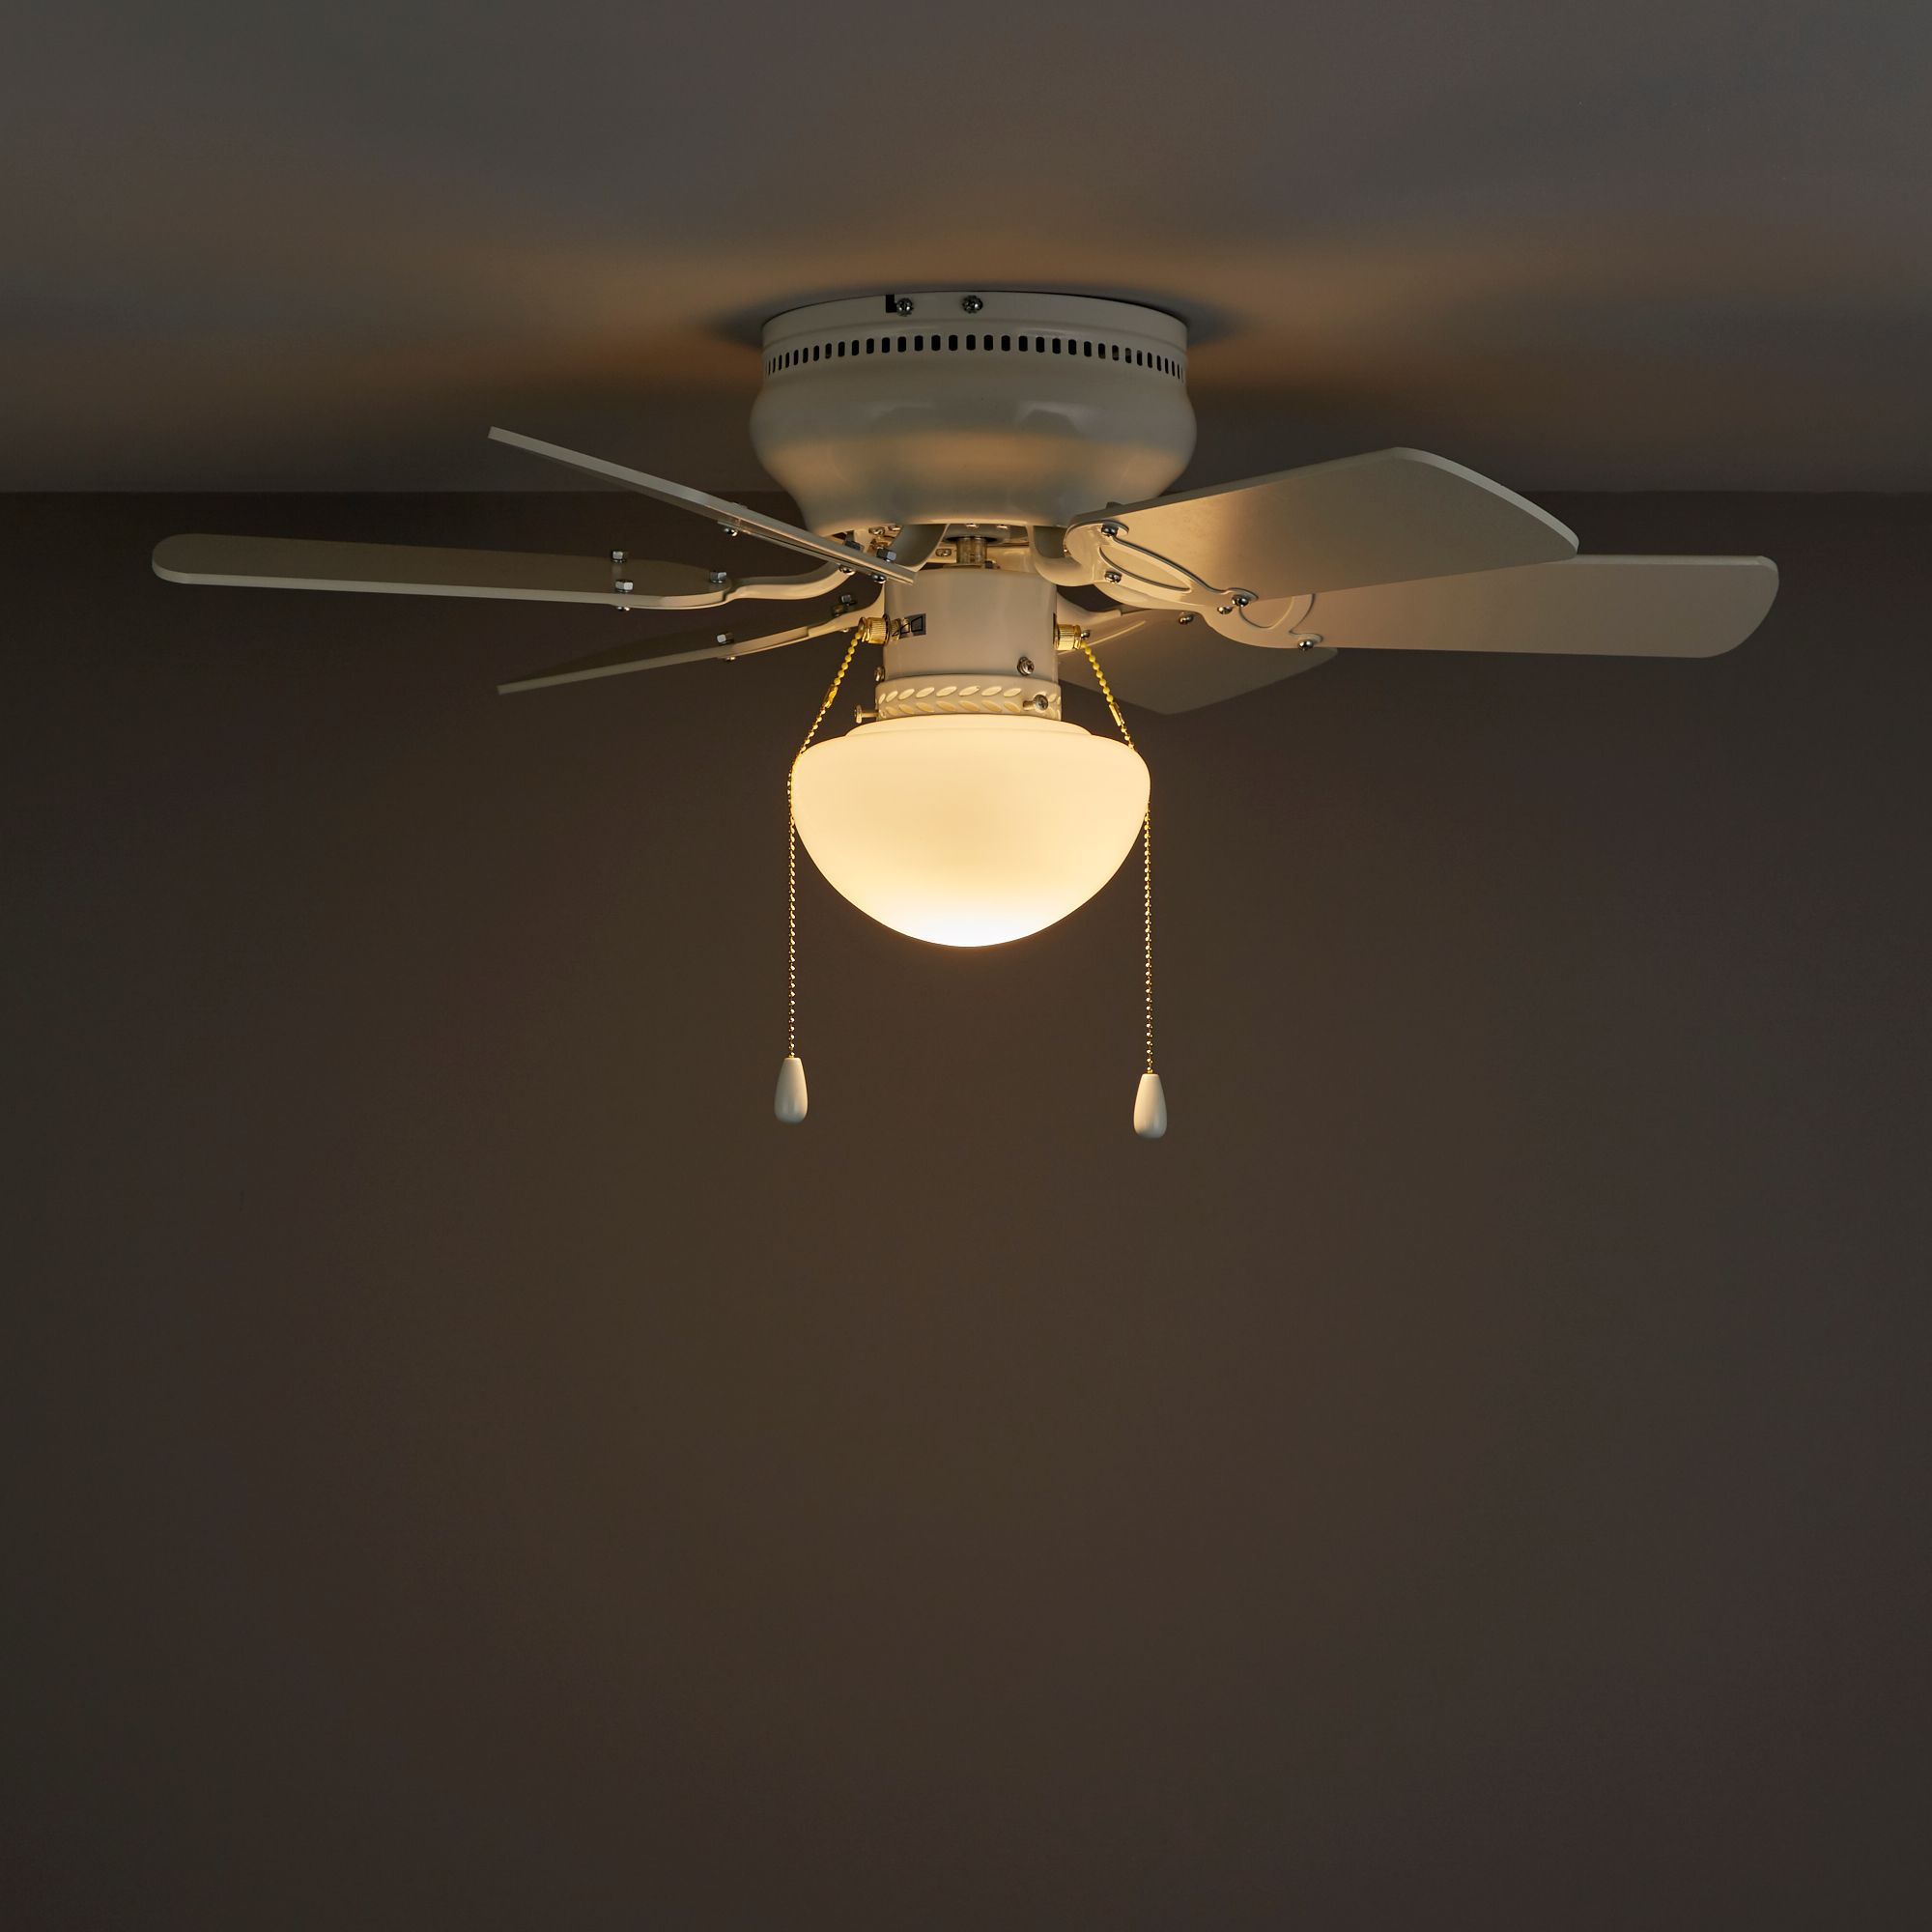 Twister White Ceiling Fan Light Departments Diy At B Amp Q